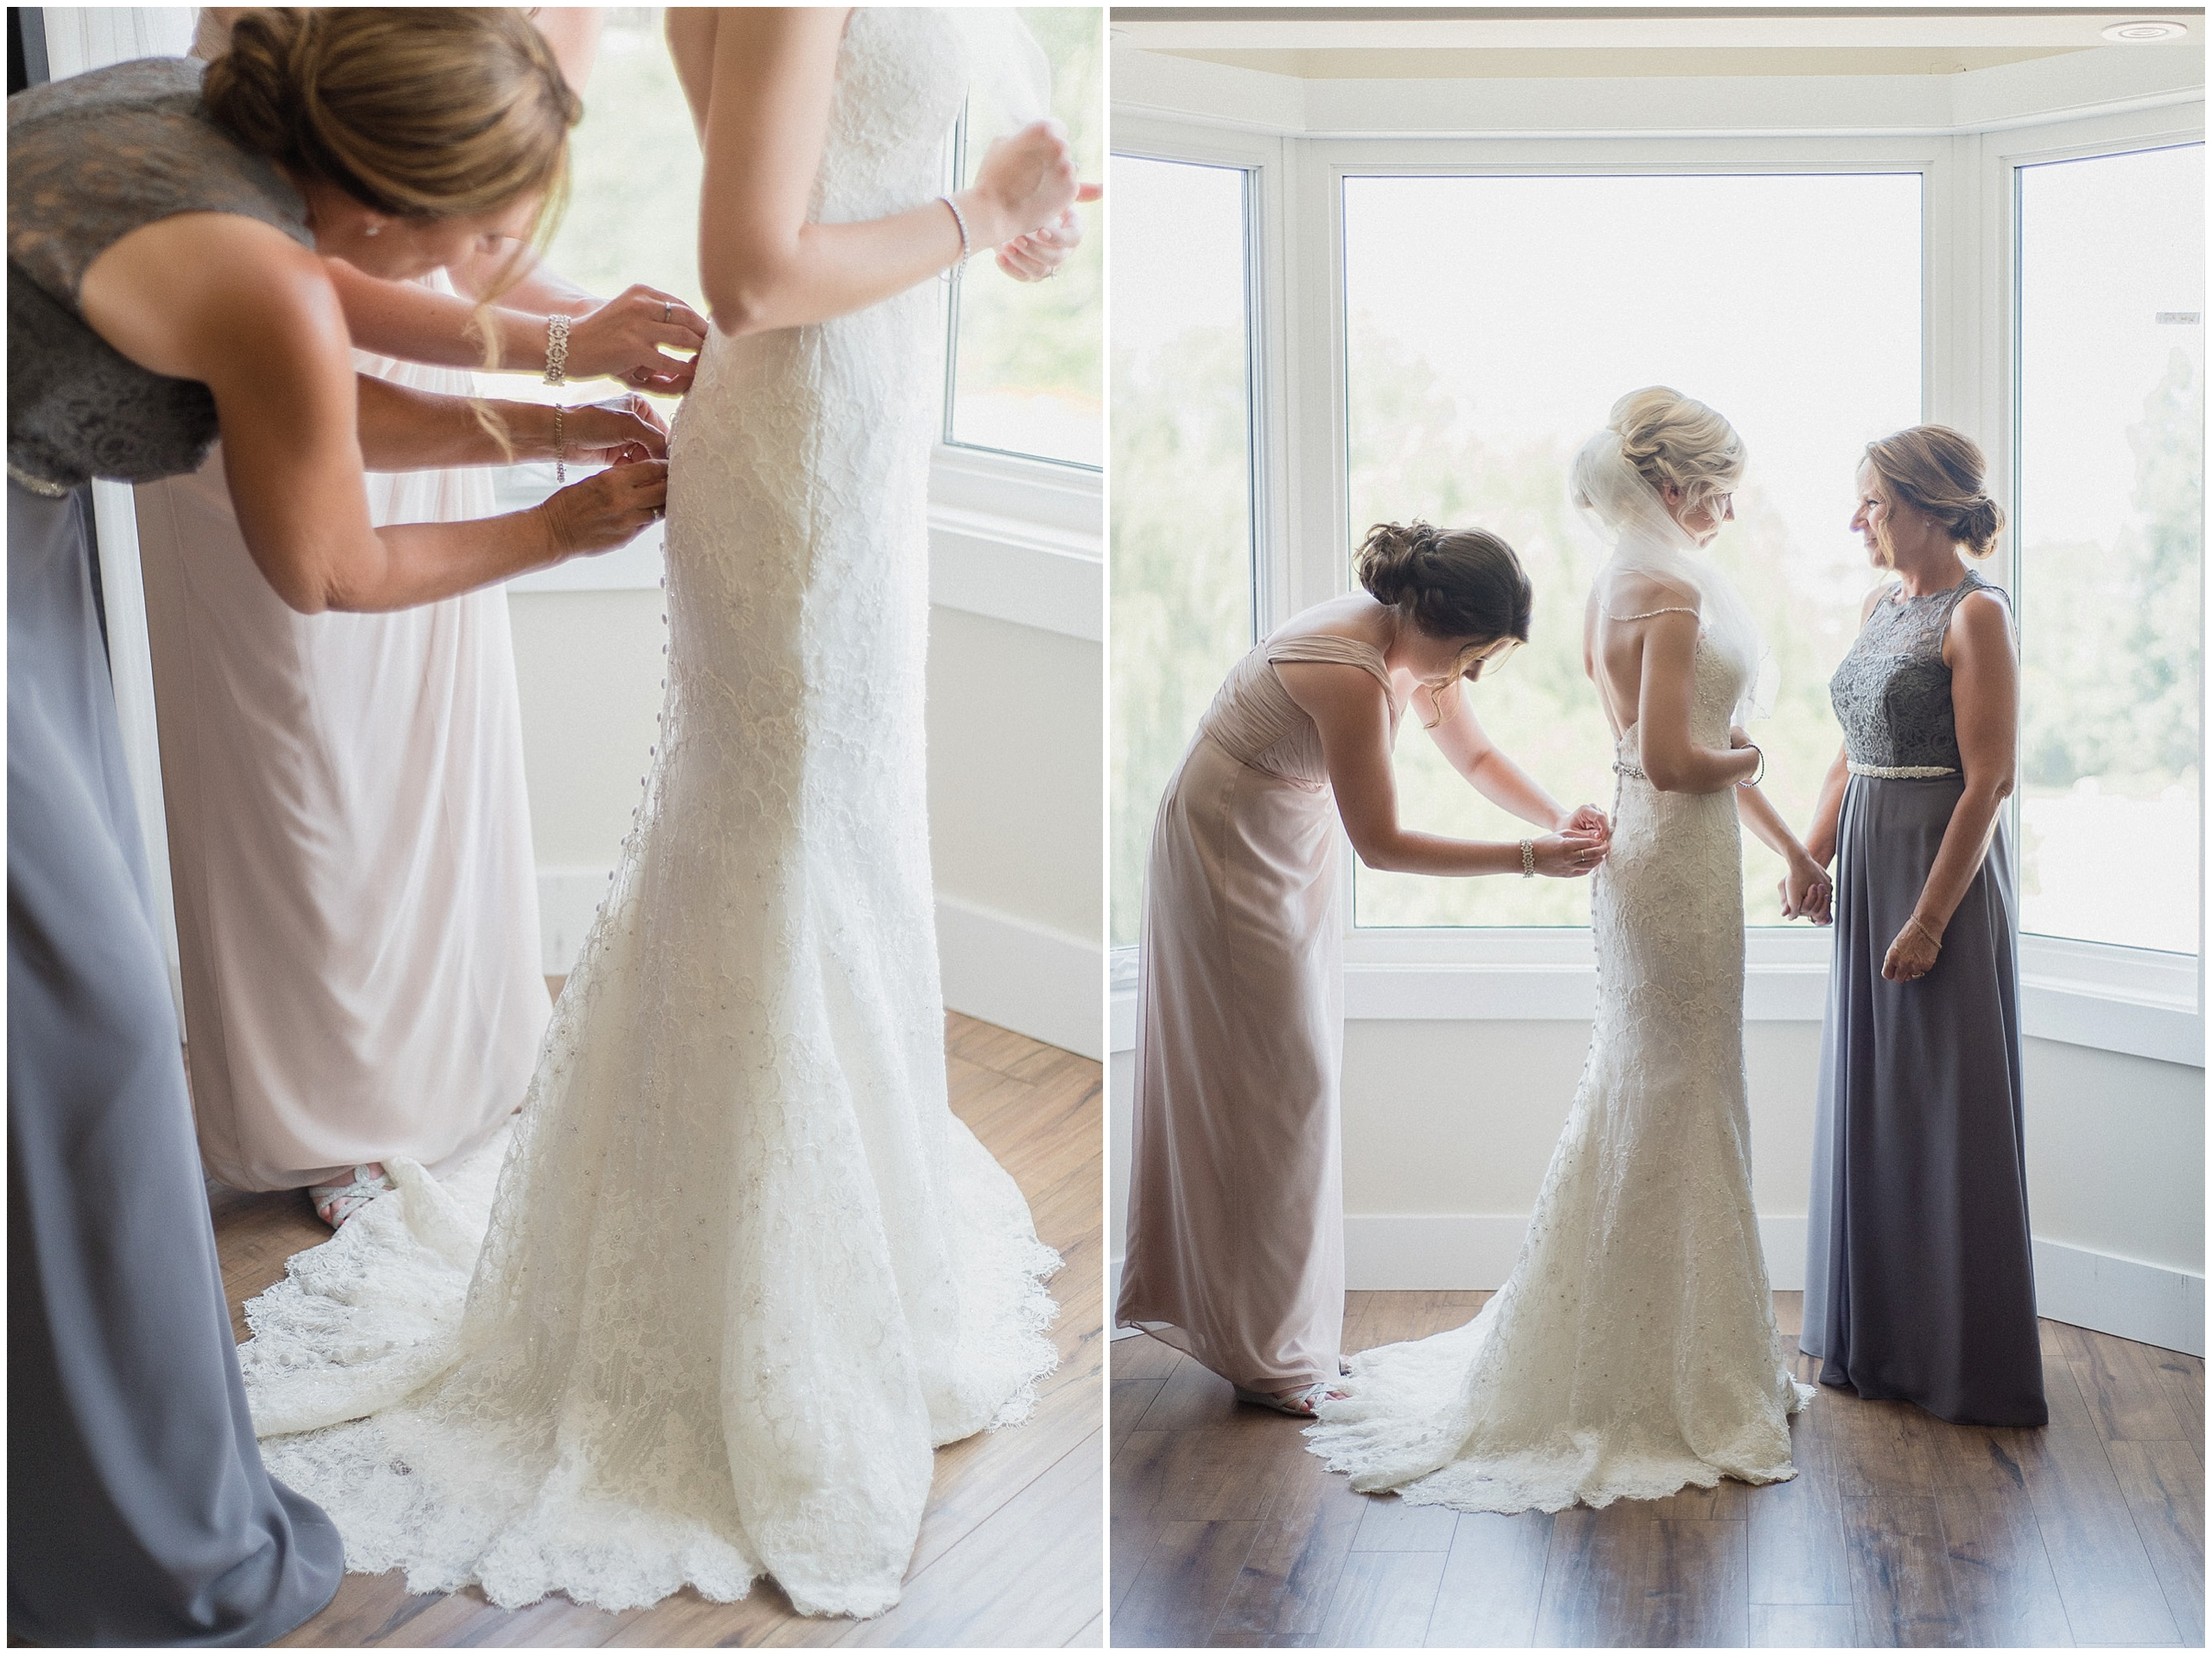 Sweet moment between Bride and her Mom! Photographed by Jenn Kavanagh Photography